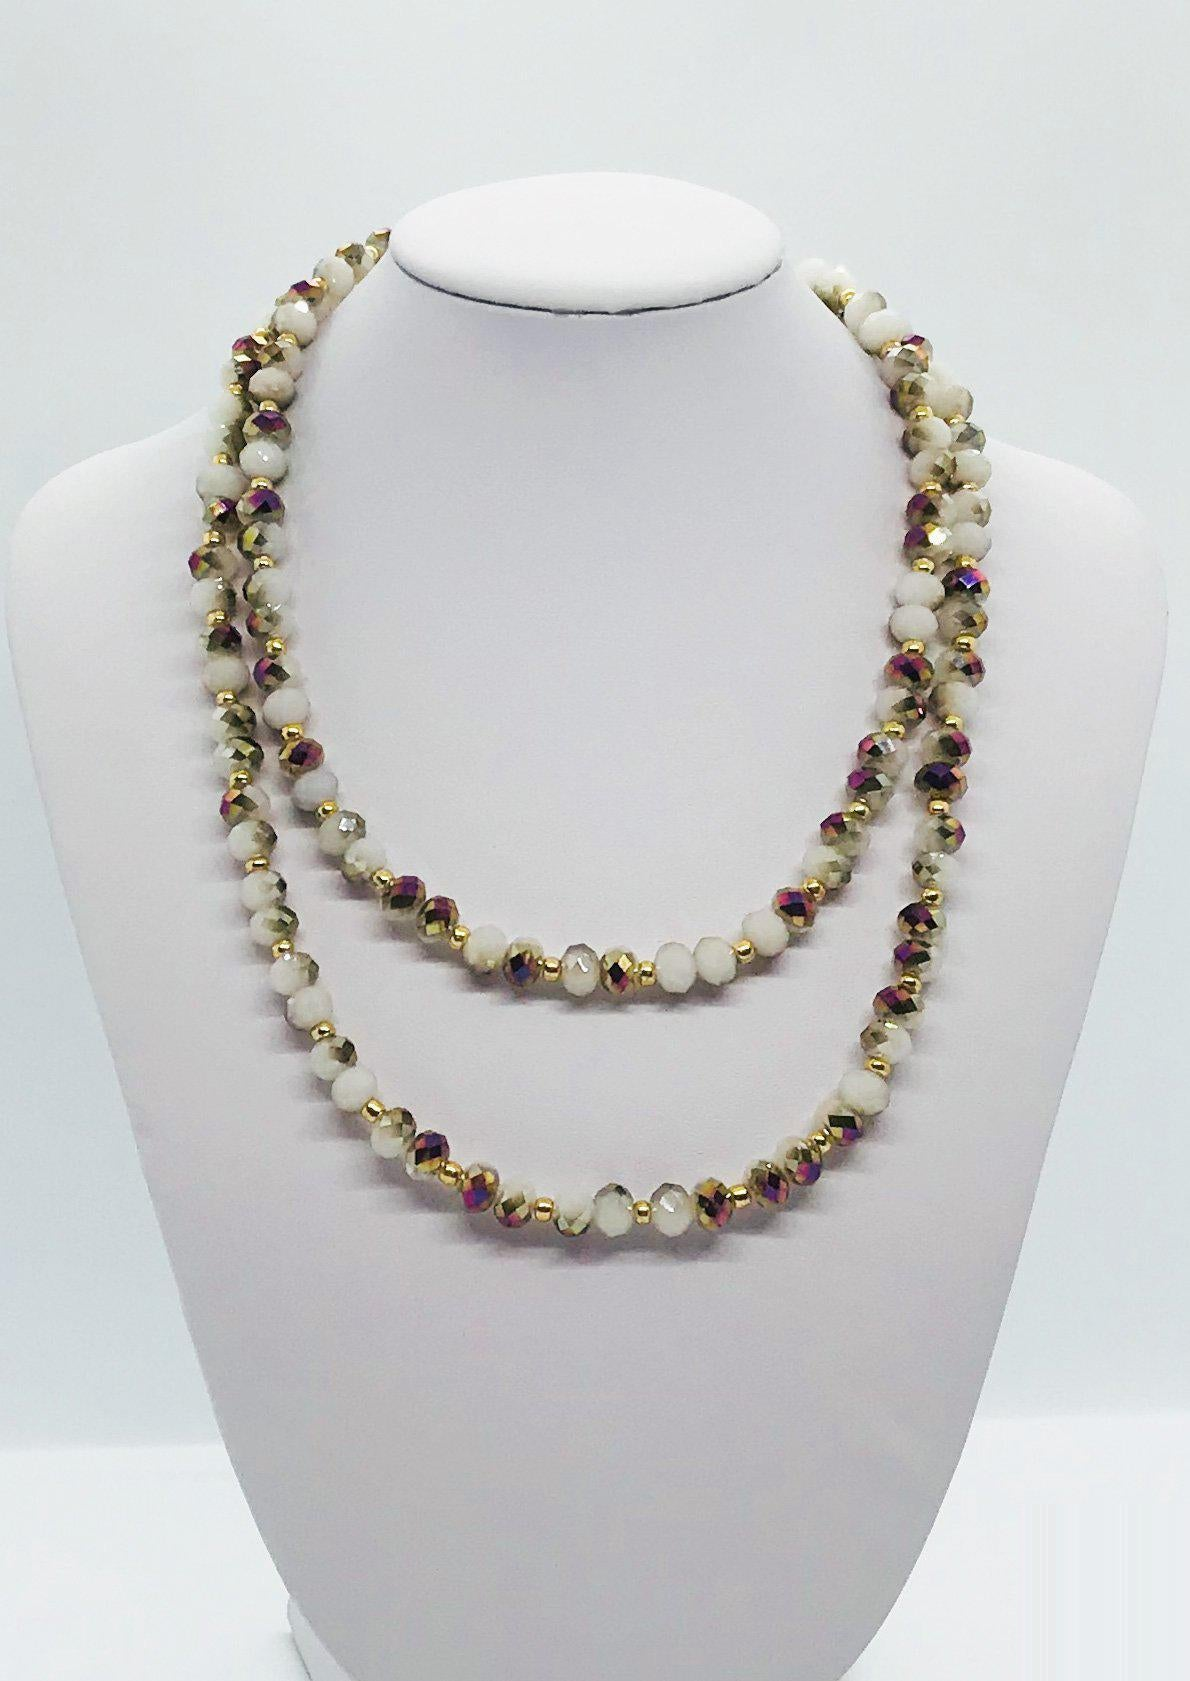 Glass Bead Necklace and Matching Bracelet Set - NB113